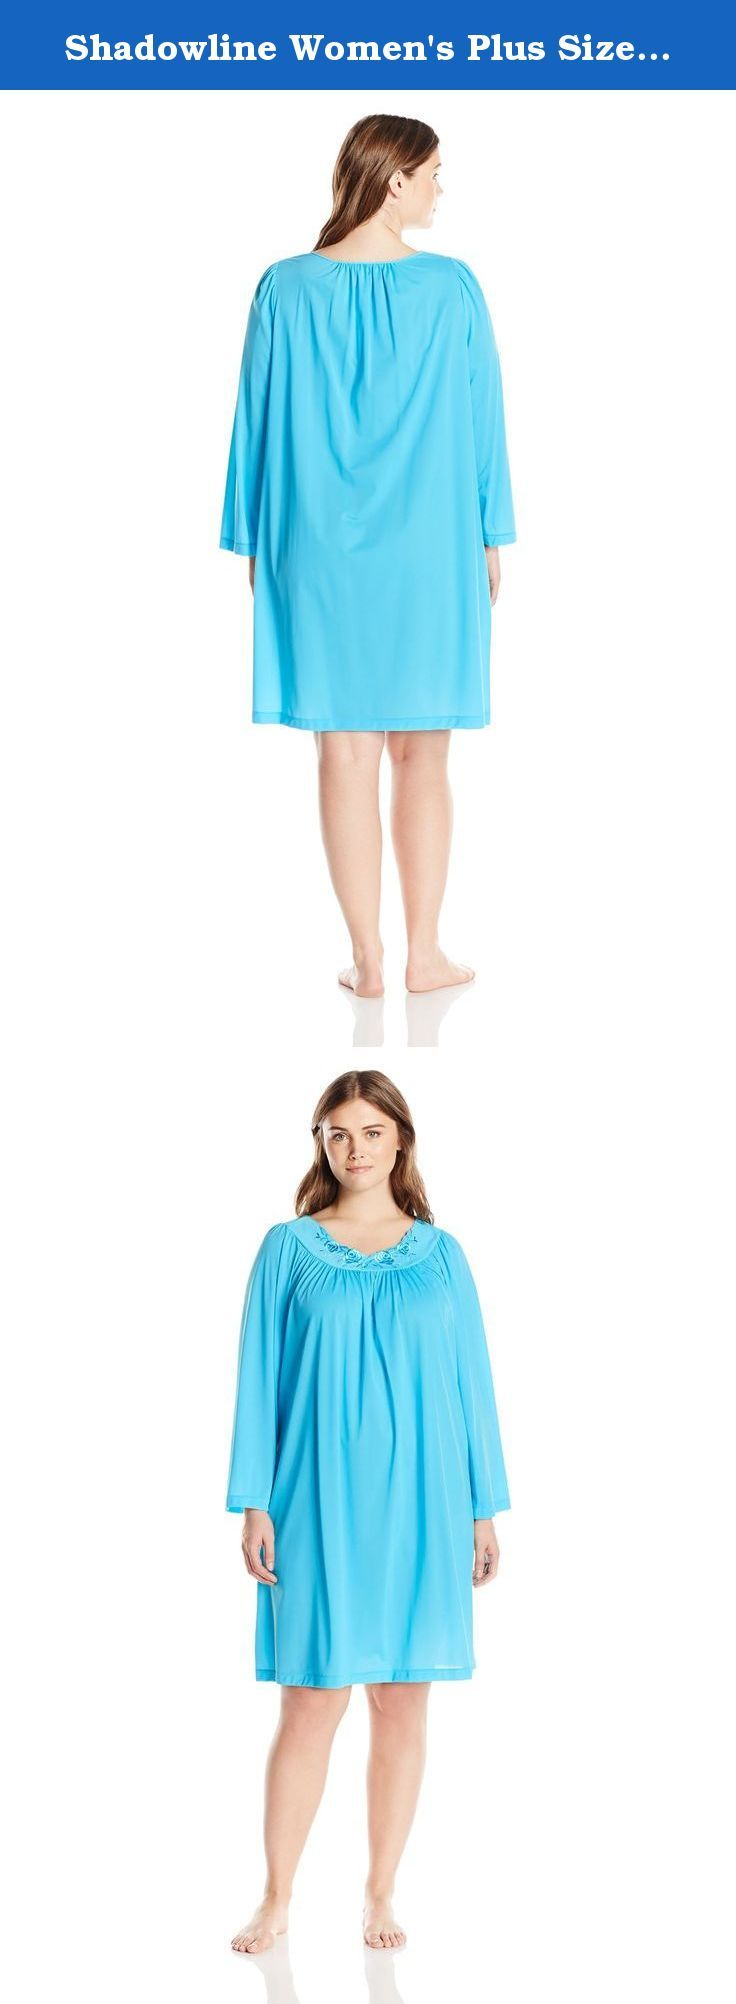 Shadowline Women's Plus Size Petals 40 Long Sleeve Waltz Gown, Turquoise, 3X. New from shadow line, the petals waltz gown with long sleeve features a soft embroidered neckline in our signature petals design. Gentle gathers falling from the front and back yoke give a feminine touch with a comfortable fit. Shadowline 100 percent opacitrique use-made nylon tricot fabric ensures maximum opaqueness with exceptional comfort. Our petals collection is the hallmark of shadow line commitment to…